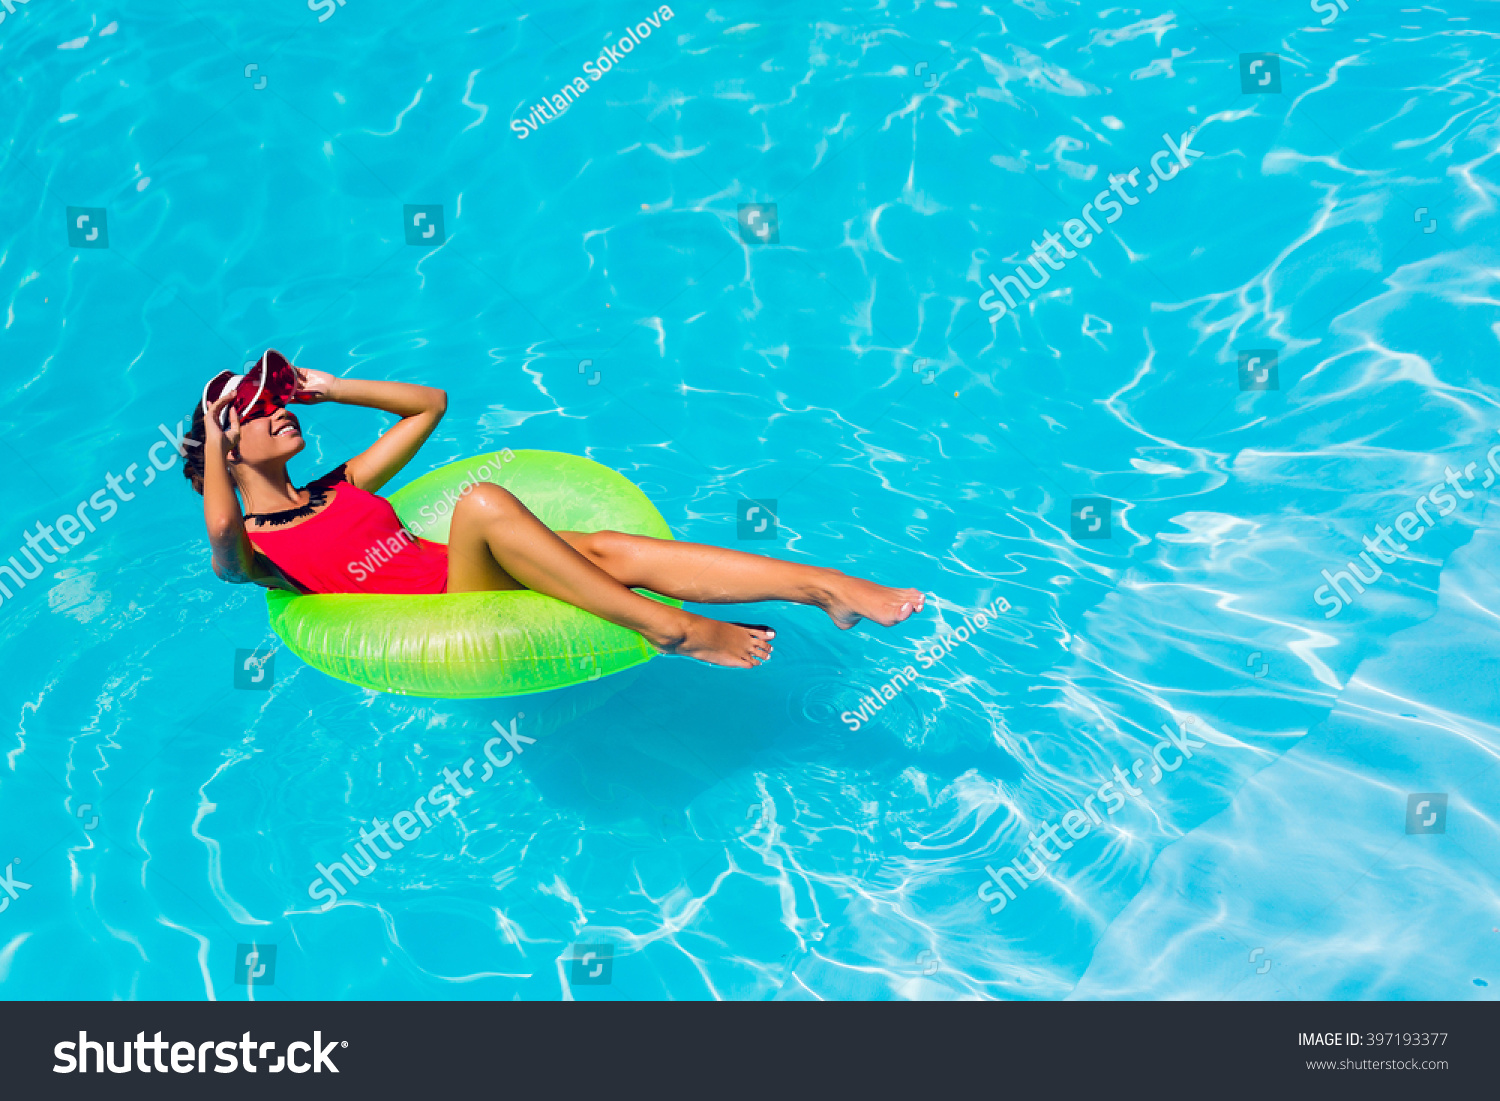 Sexy Tanned Woman Red Swimsuit Having Photo Libre De Droits 397193377 - Shutterstock-1744